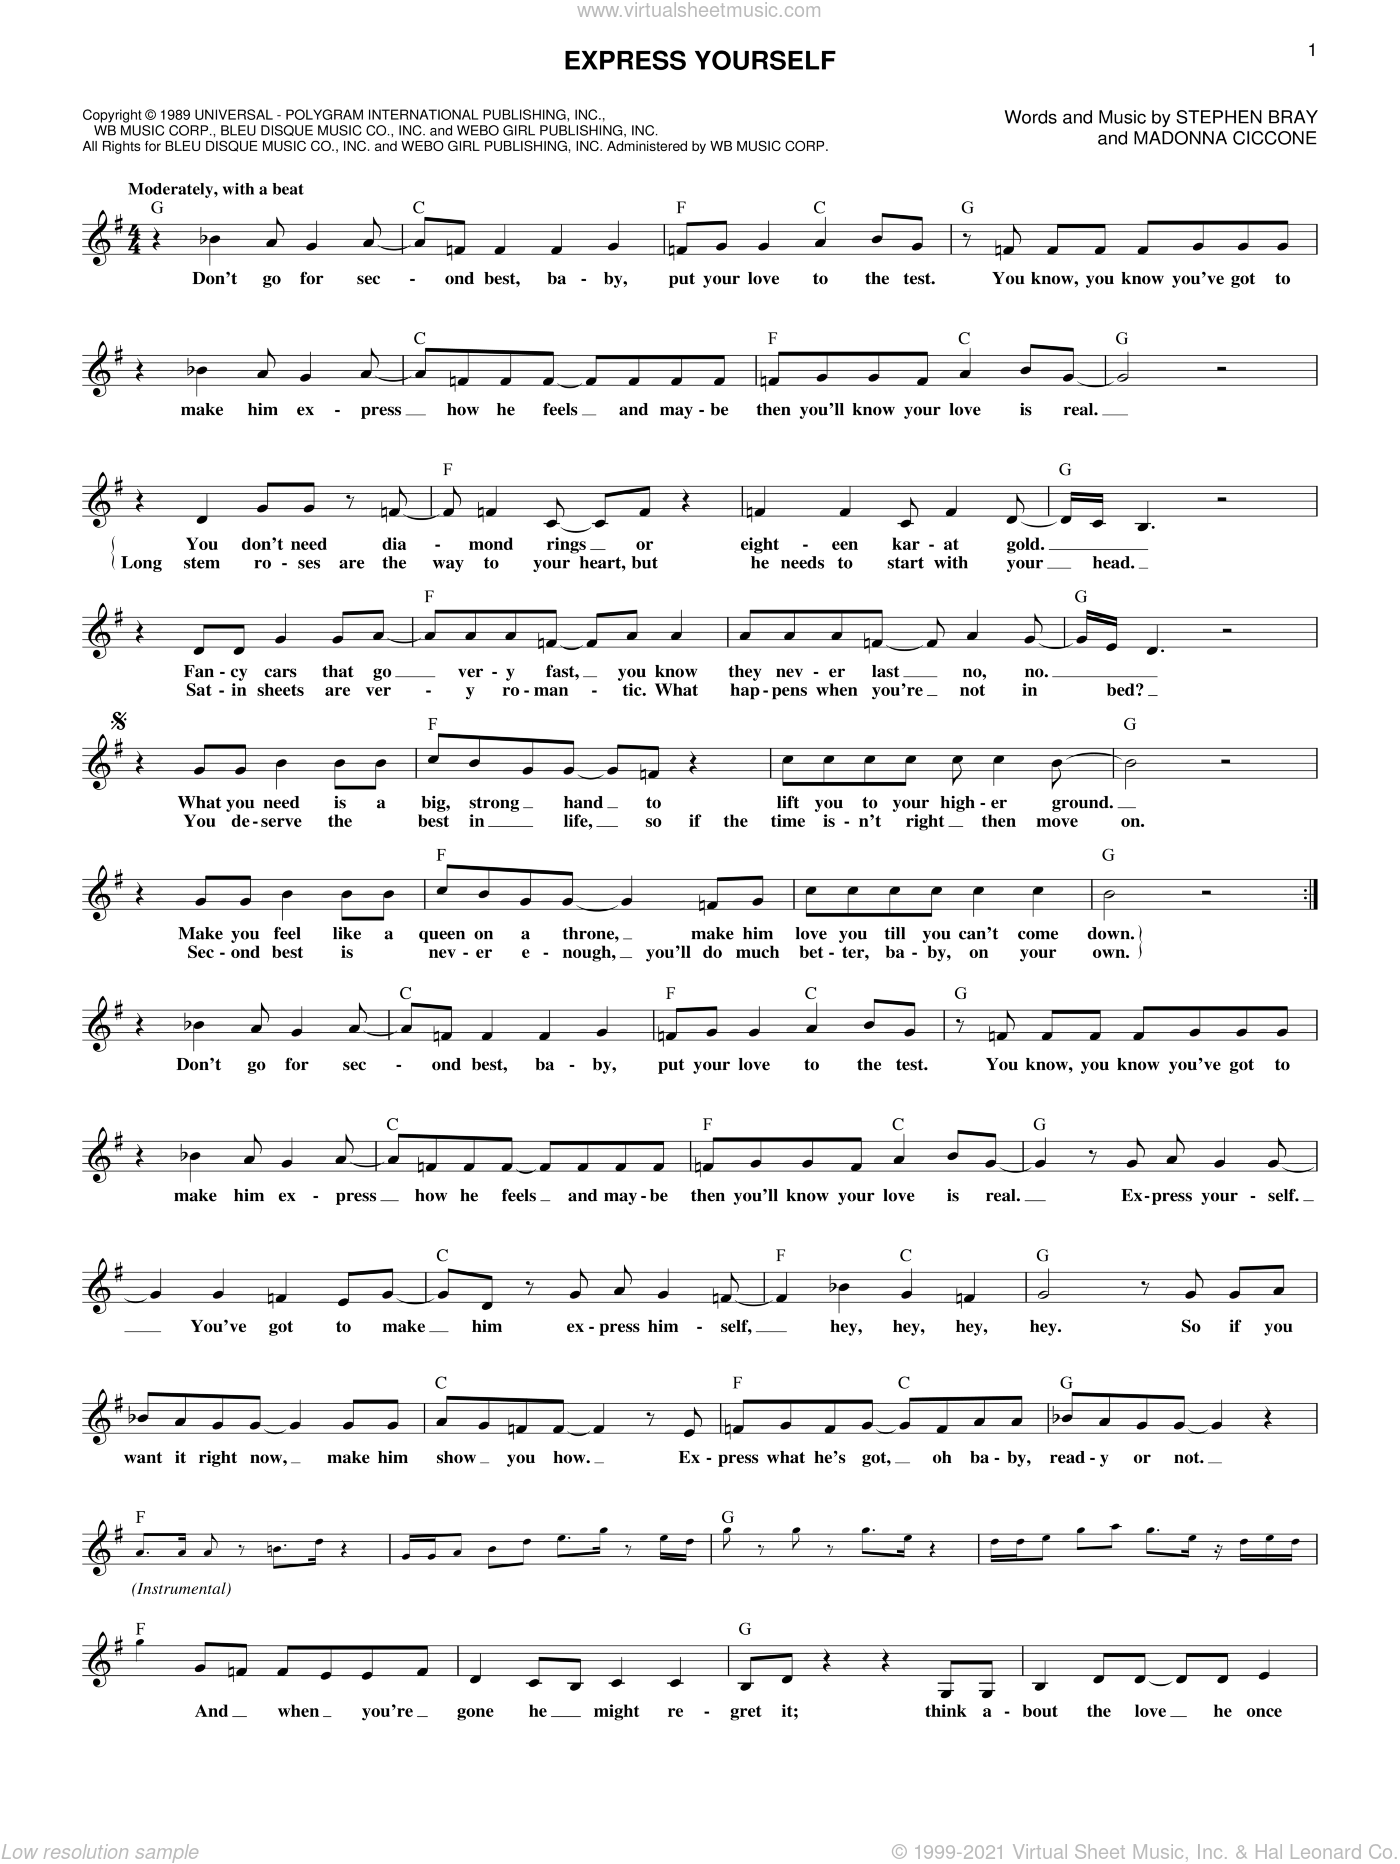 Express Yourself sheet music for voice and other instruments (fake book) by Madonna and Stephen Bray, intermediate skill level